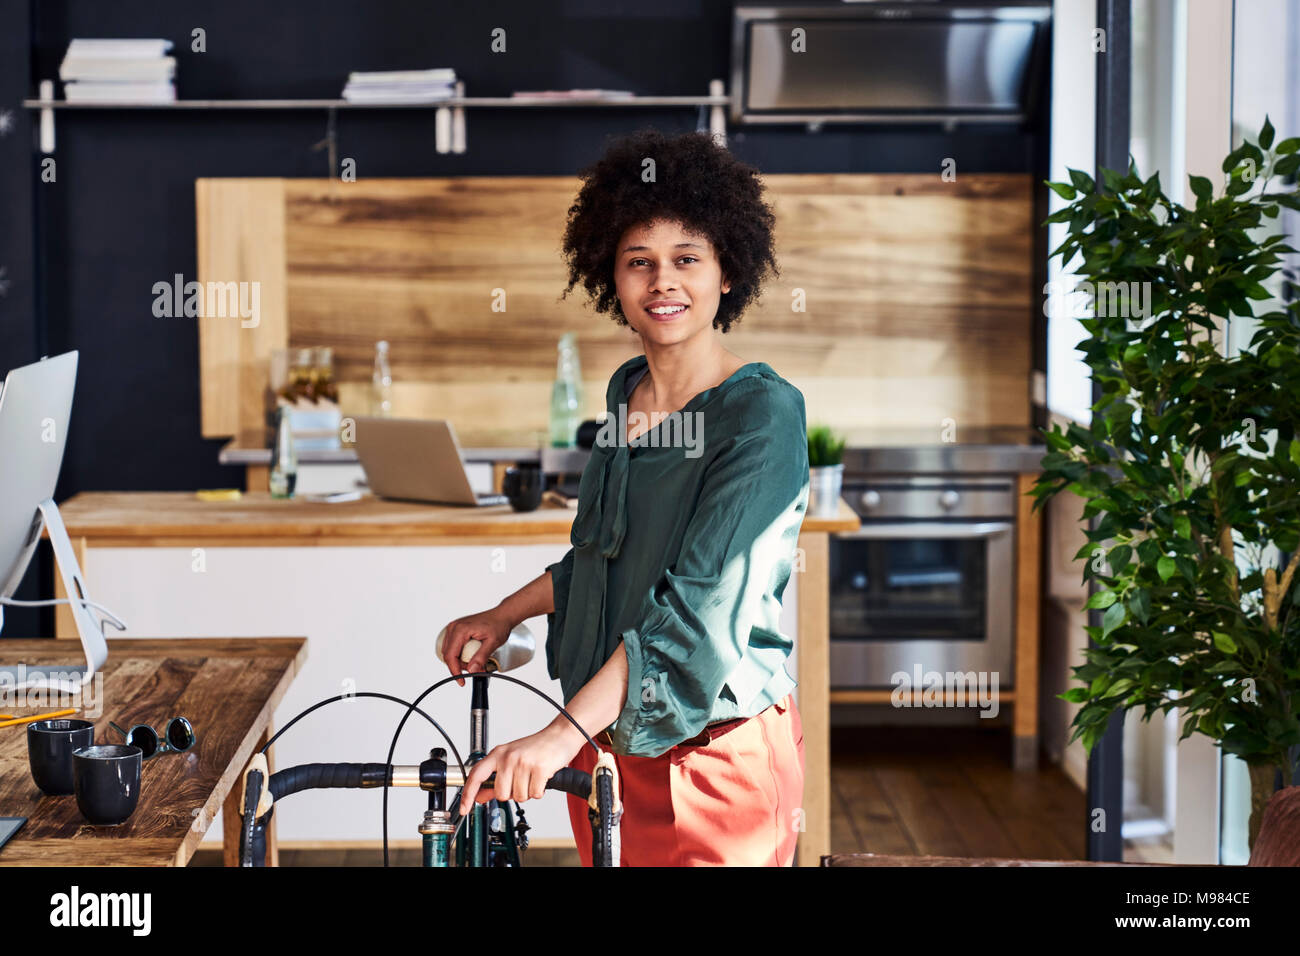 Portrait of smiling young woman with bicycle in modern office - Stock Image